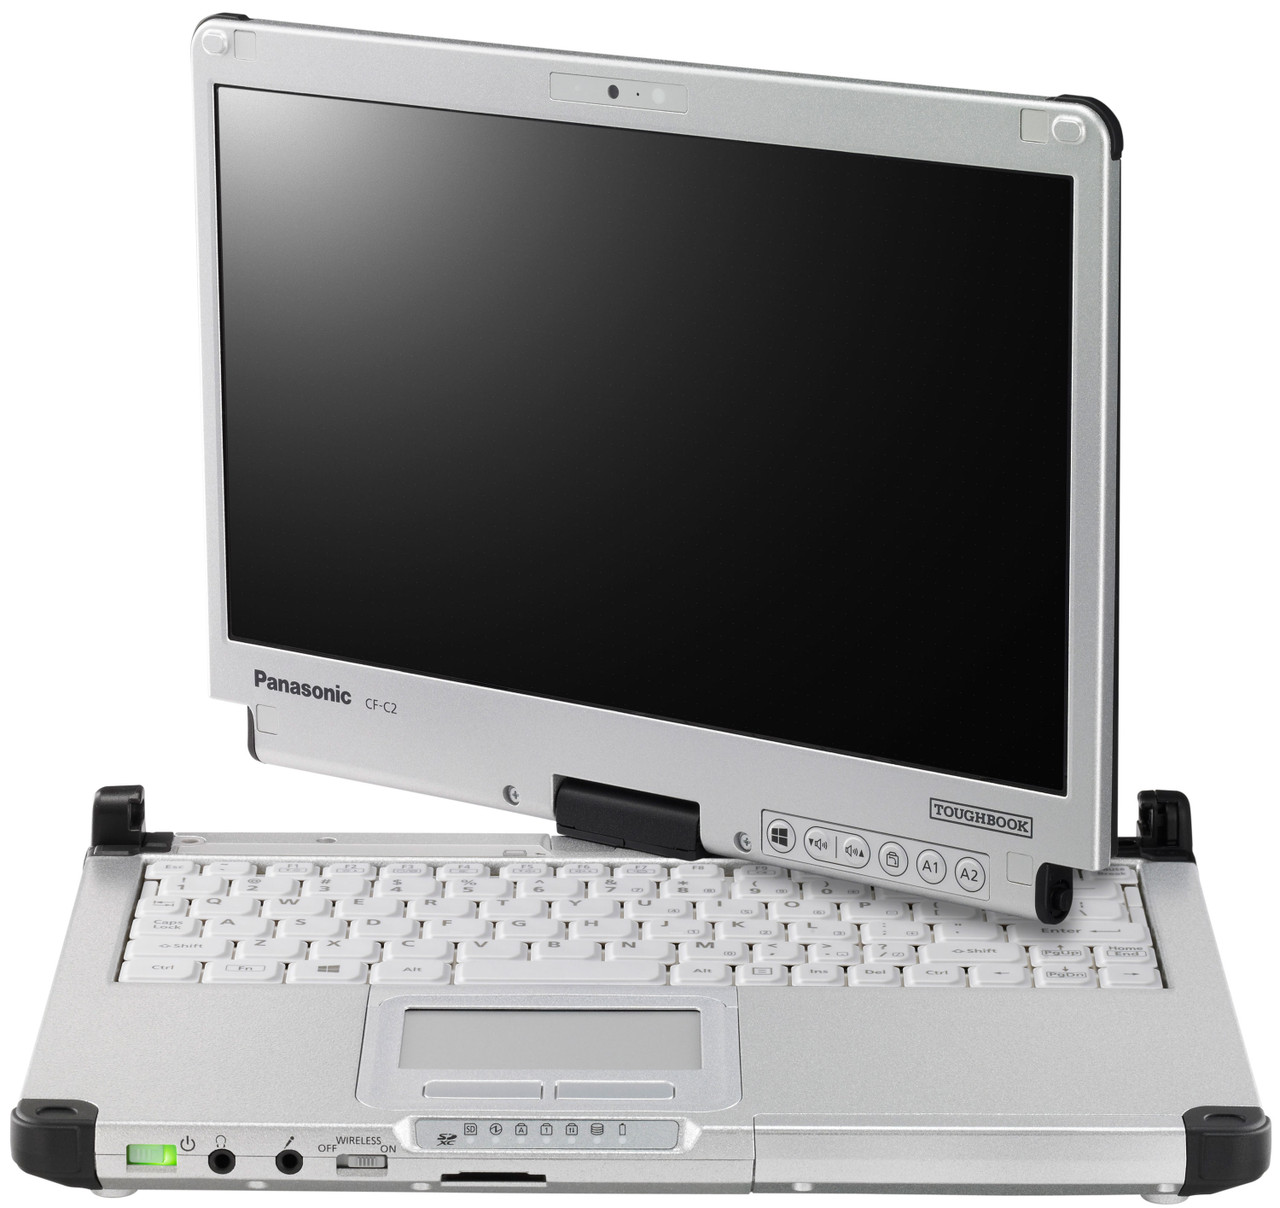 Panasonic CF-H2 Convertible desktop